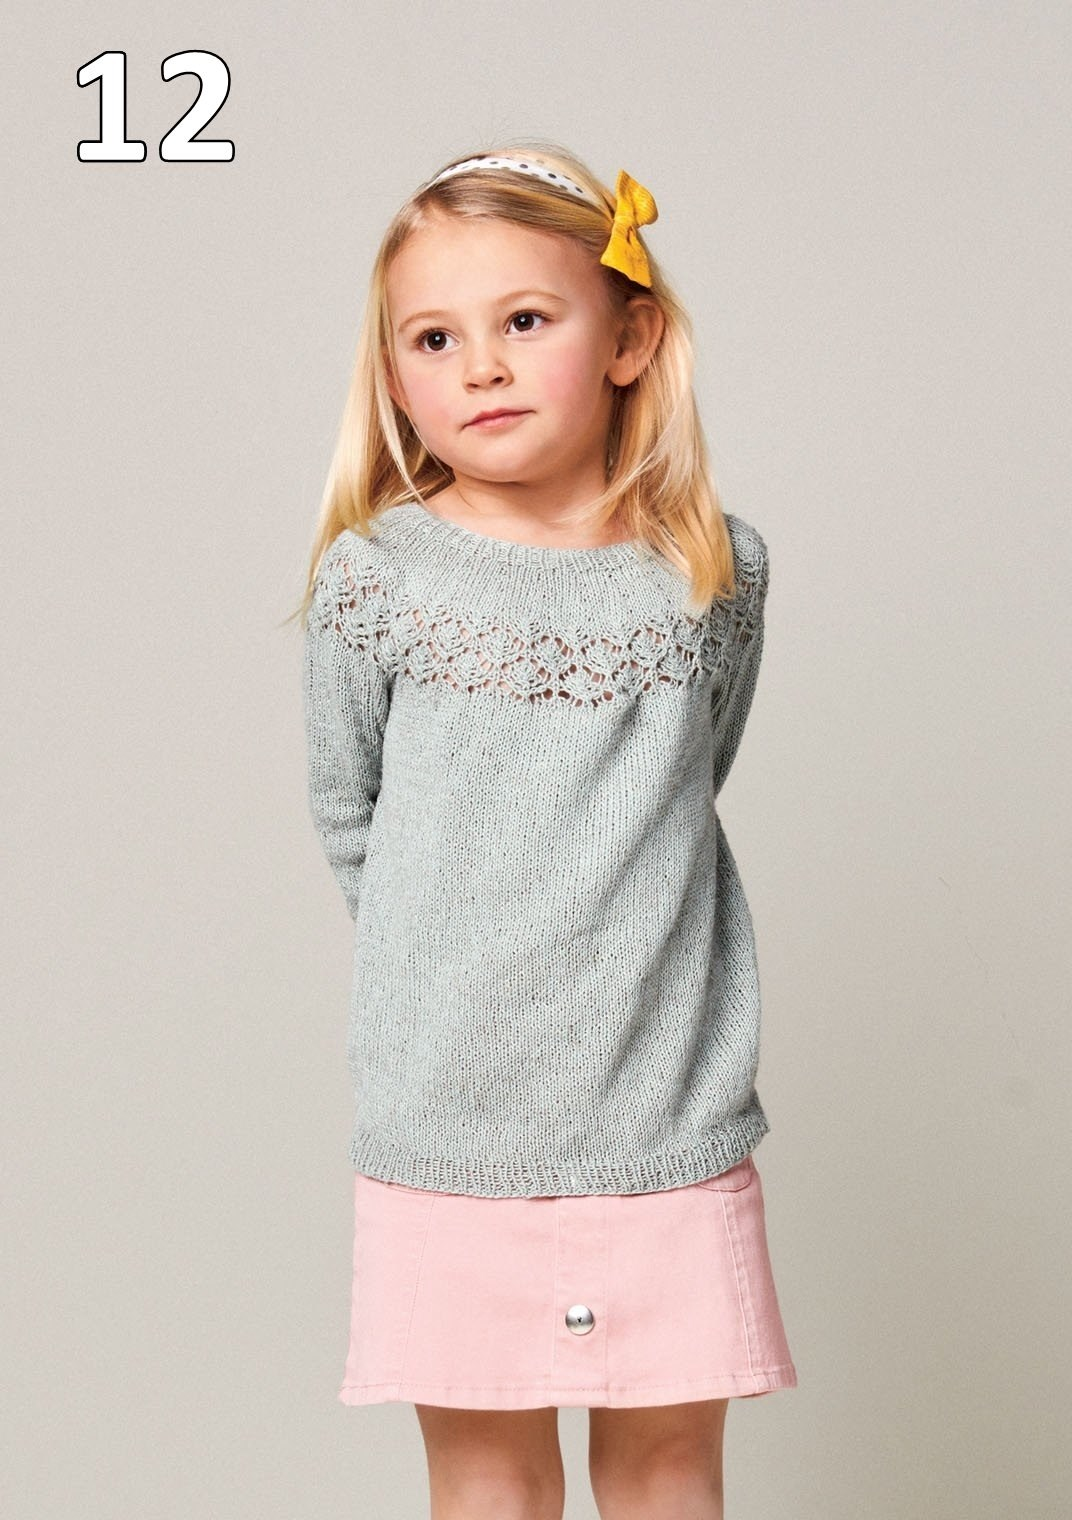 Sandnes 2105 model 12 Pæon Sweater